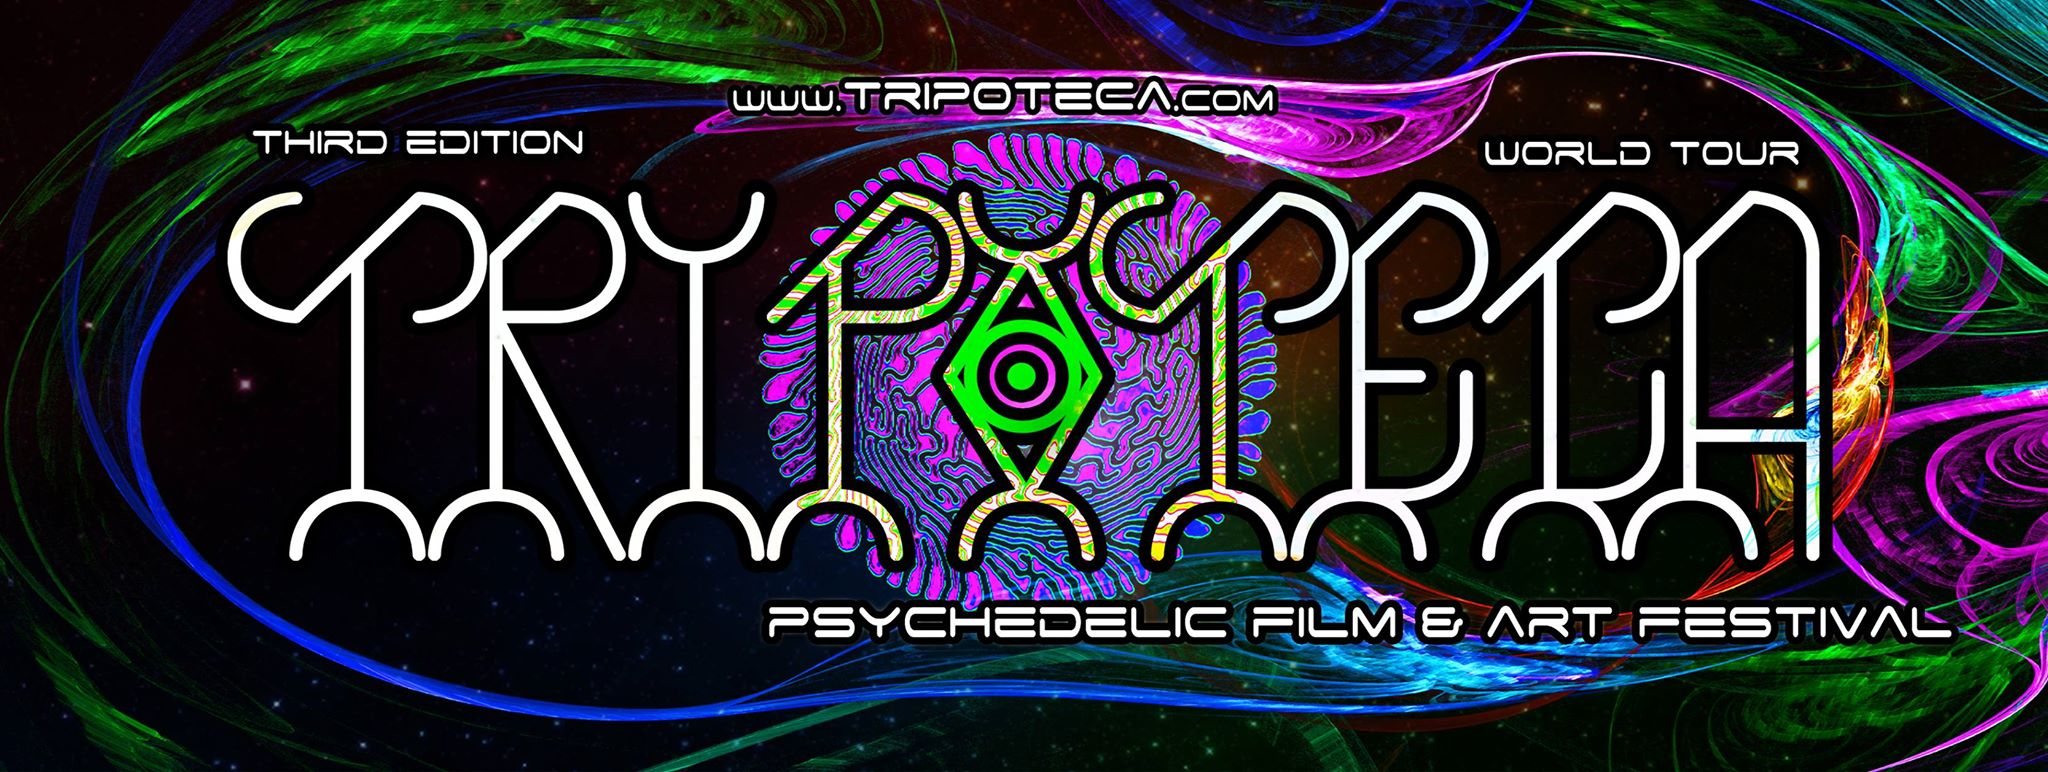 Psychedelic Video Festival – Tripoteca near you ?